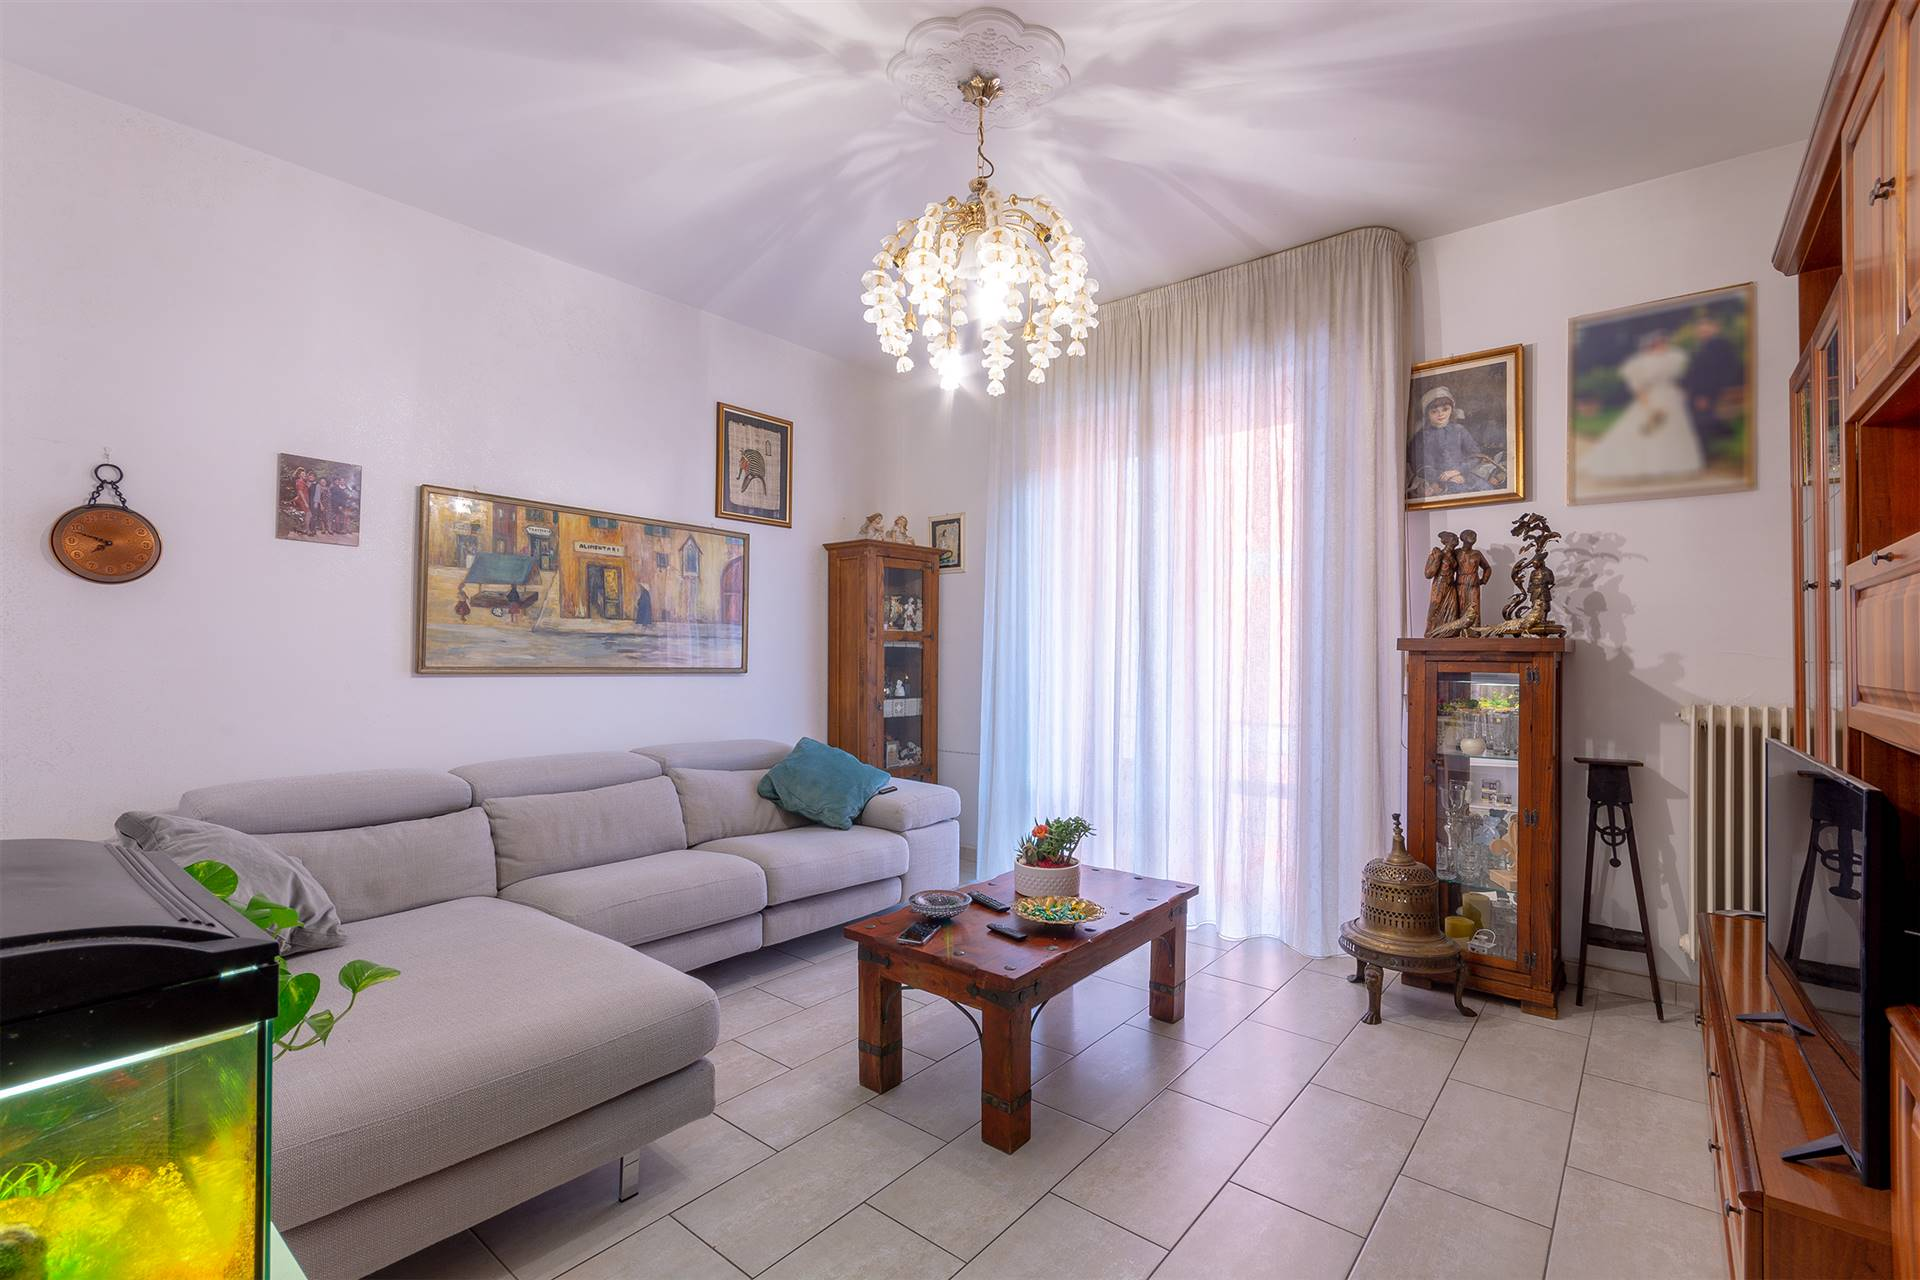 SAN PIERO A PONTI, CAMPI BISENZIO, Apartment for sale of 127 Sq. mt., Good condition, Heating Individual heating system, Energetic class: G, placed